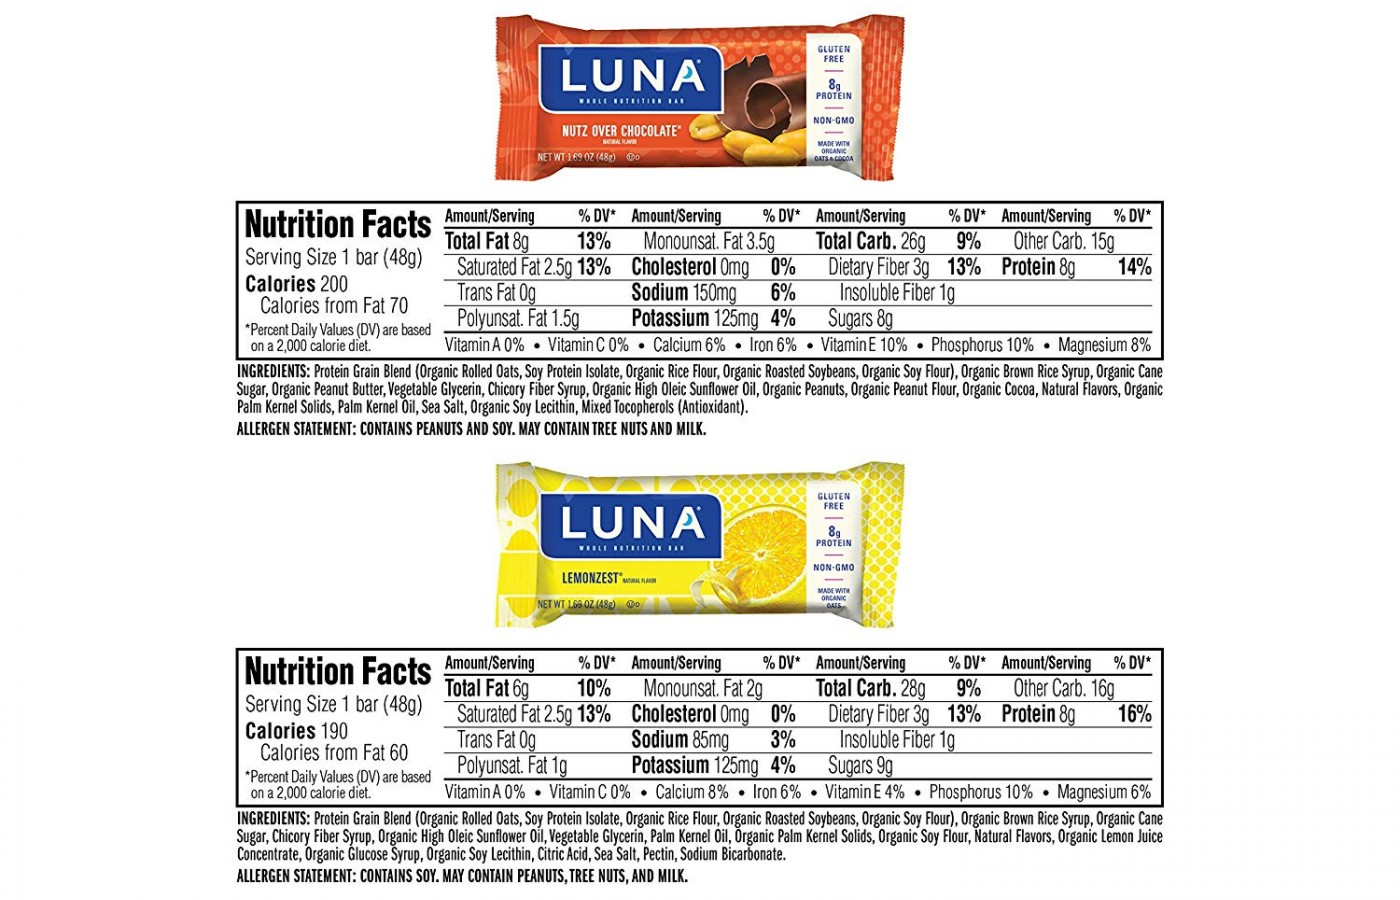 LunaBarNutritionFacts